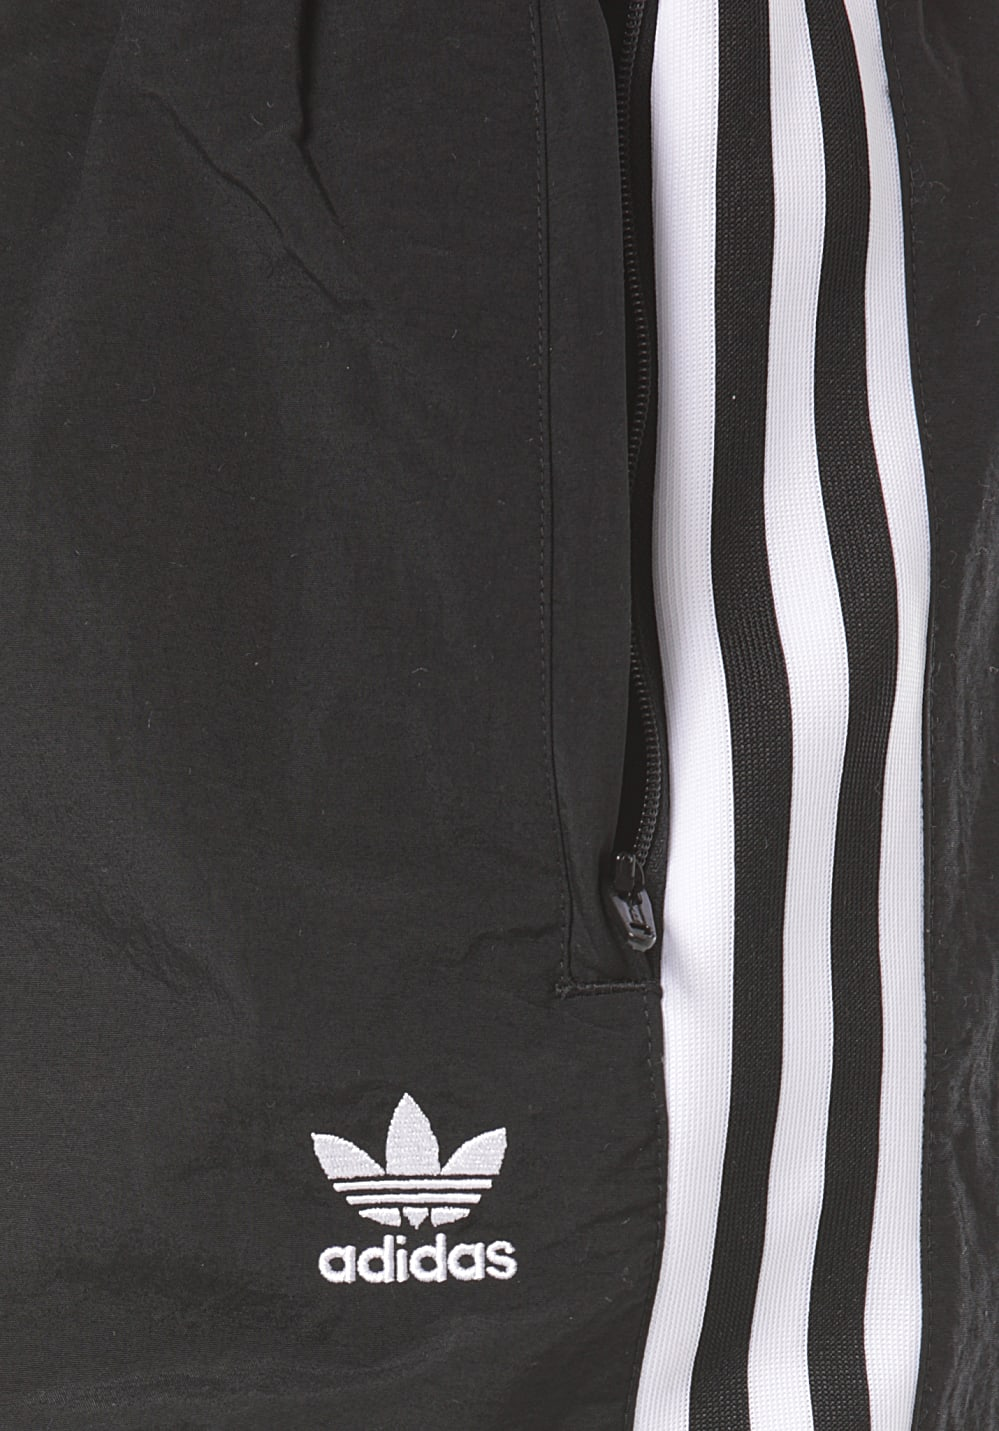 adidas Originals Lock Up Trainingshose für Damen Schwarz